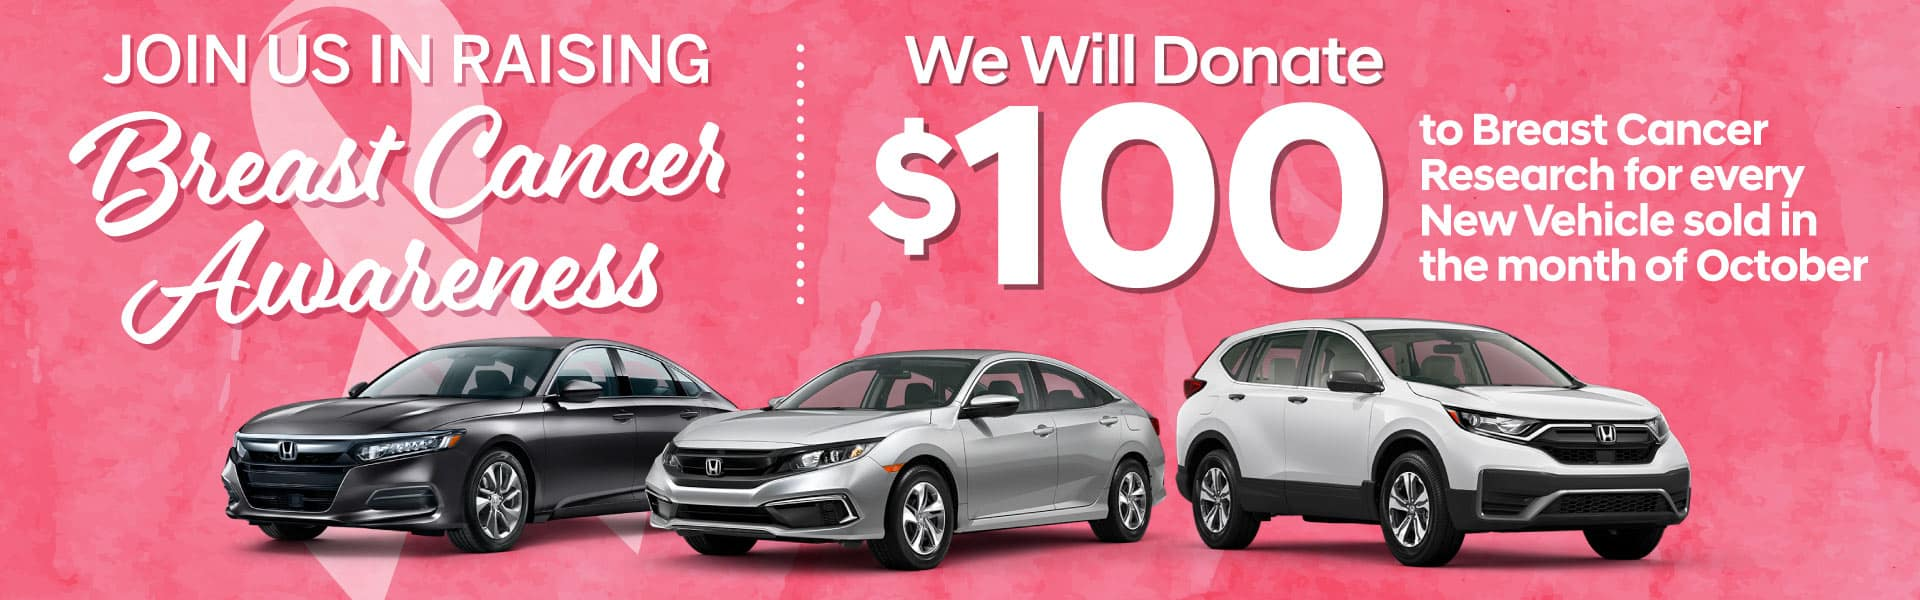 Join Us in Raising Breast Cancer Awareness | We will Donate $100 to Research for every new vehicle sold during October